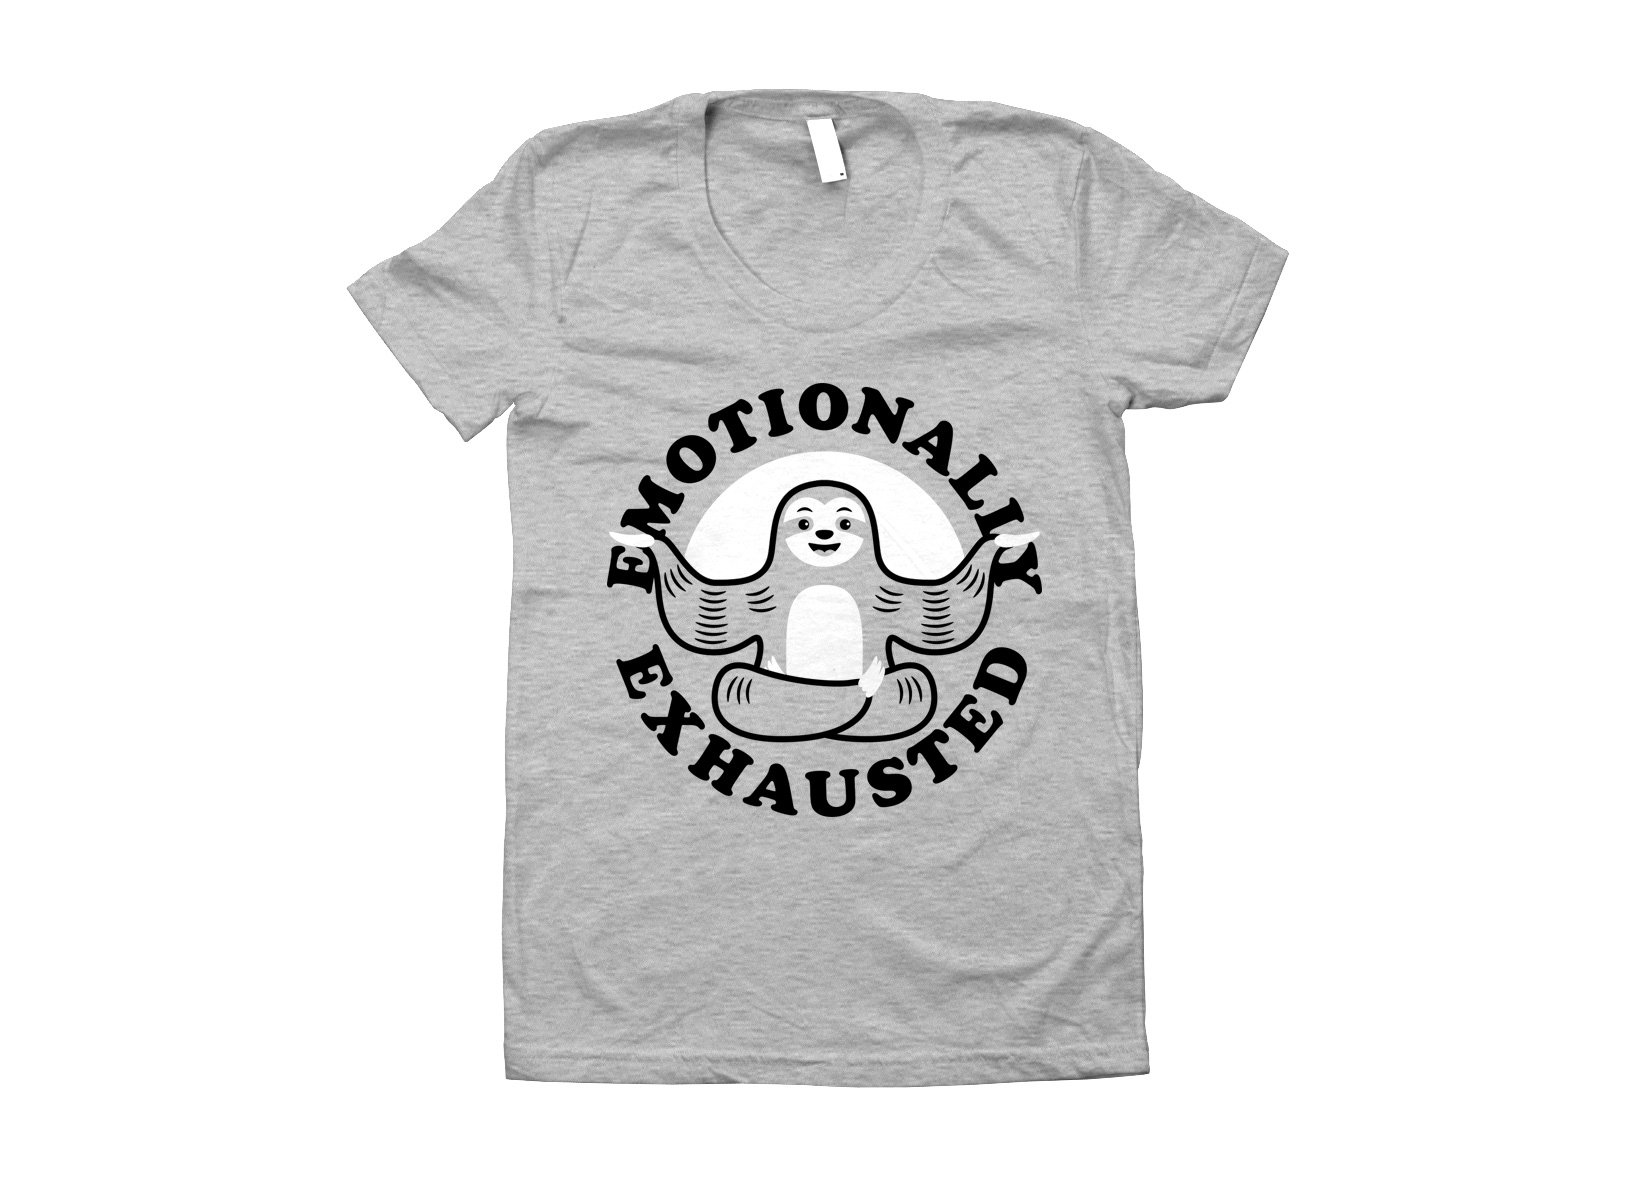 Emotionally Exhausted on Juniors T-Shirt